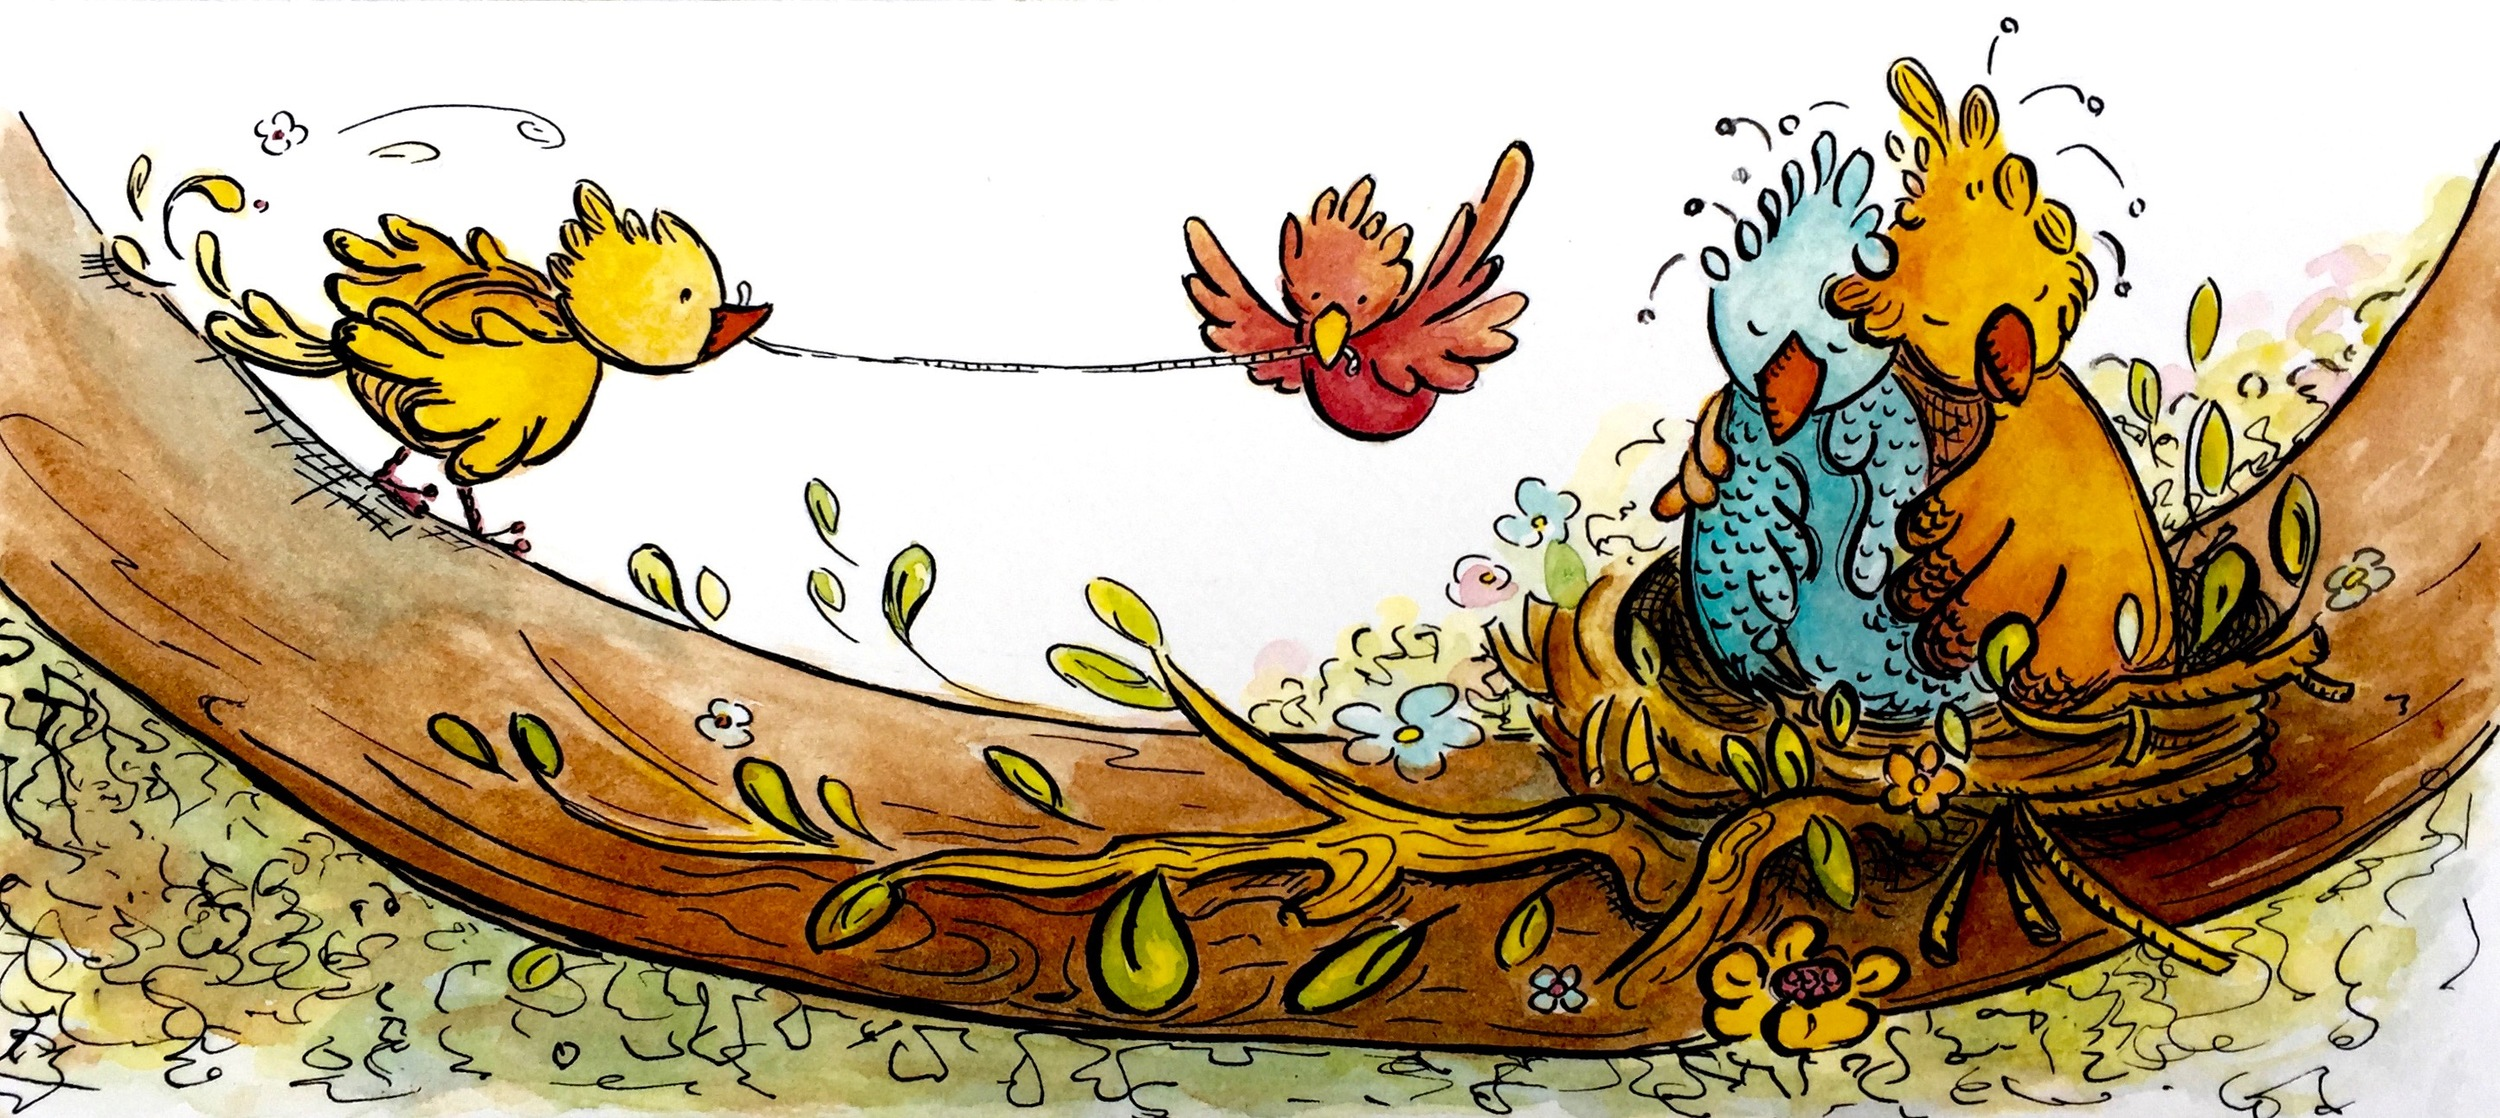 """Tug-A-Worm Created using dip pen and ink, and watercolor on illustration board. The original is 4"""" by 11""""."""